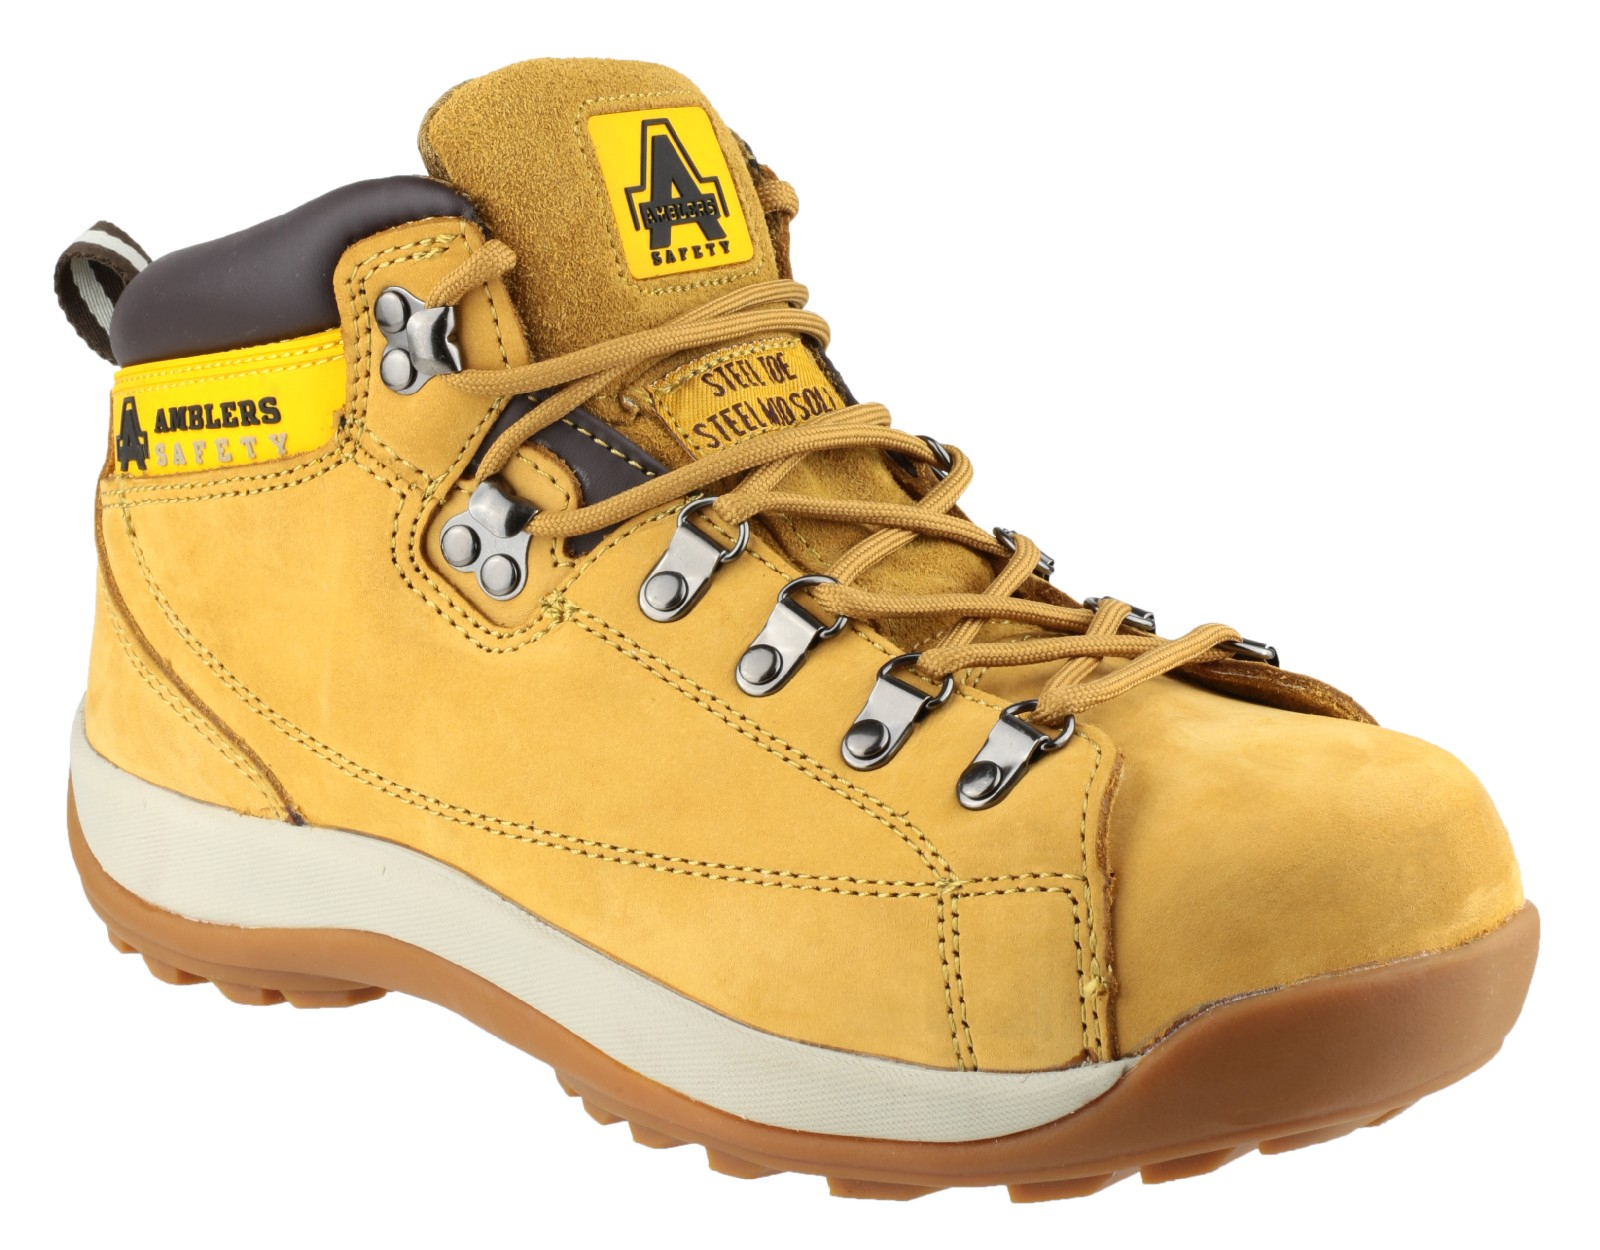 FS122 Safety Boots